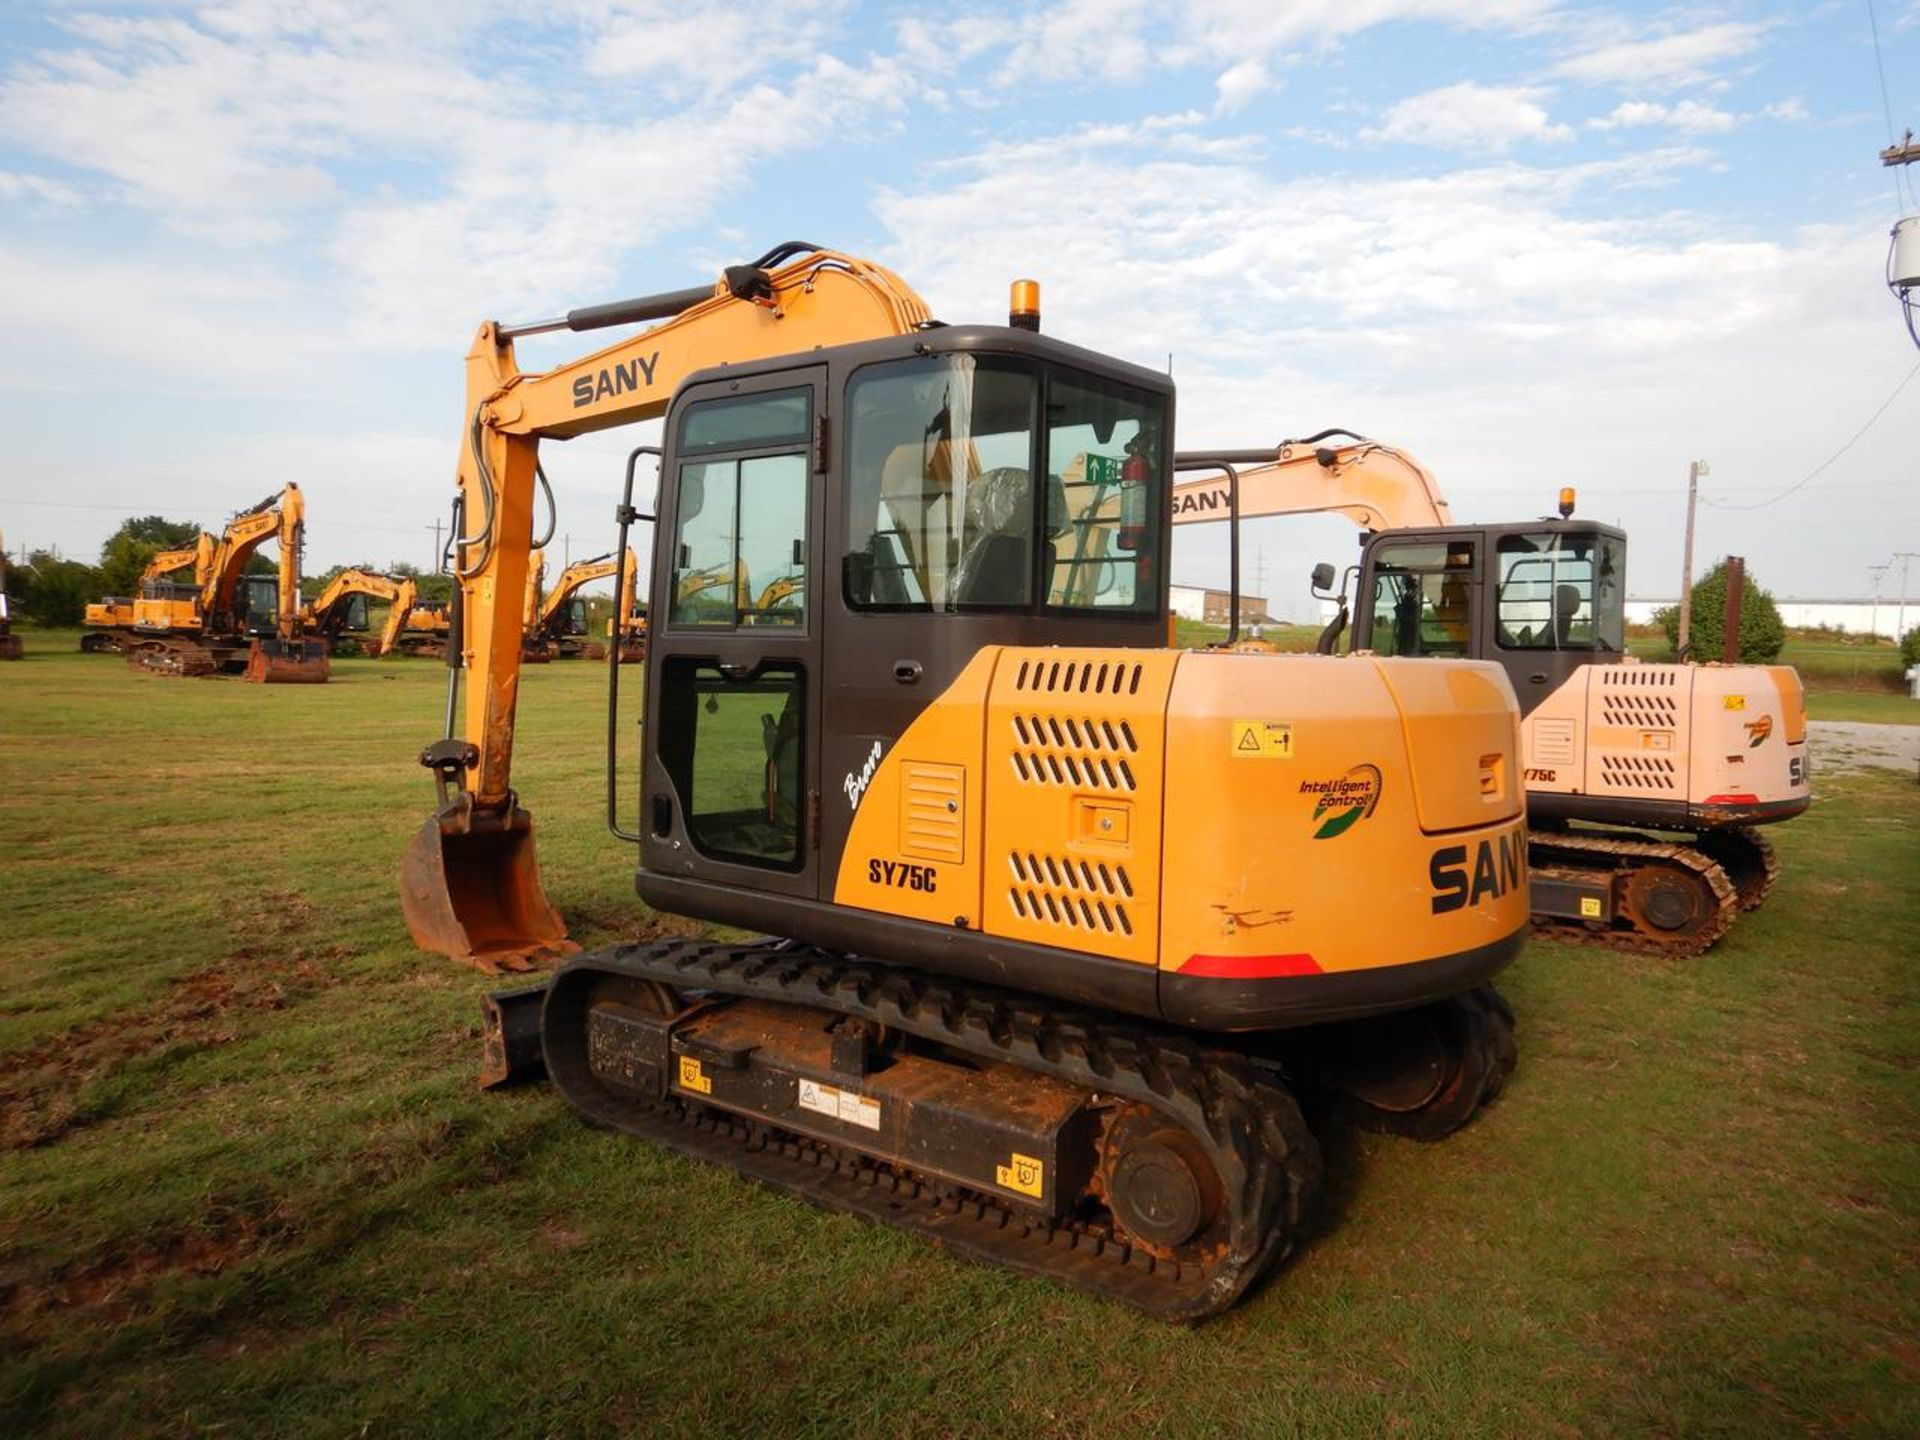 Lot 25 - 2016 SANY SY75R Mini Excavator